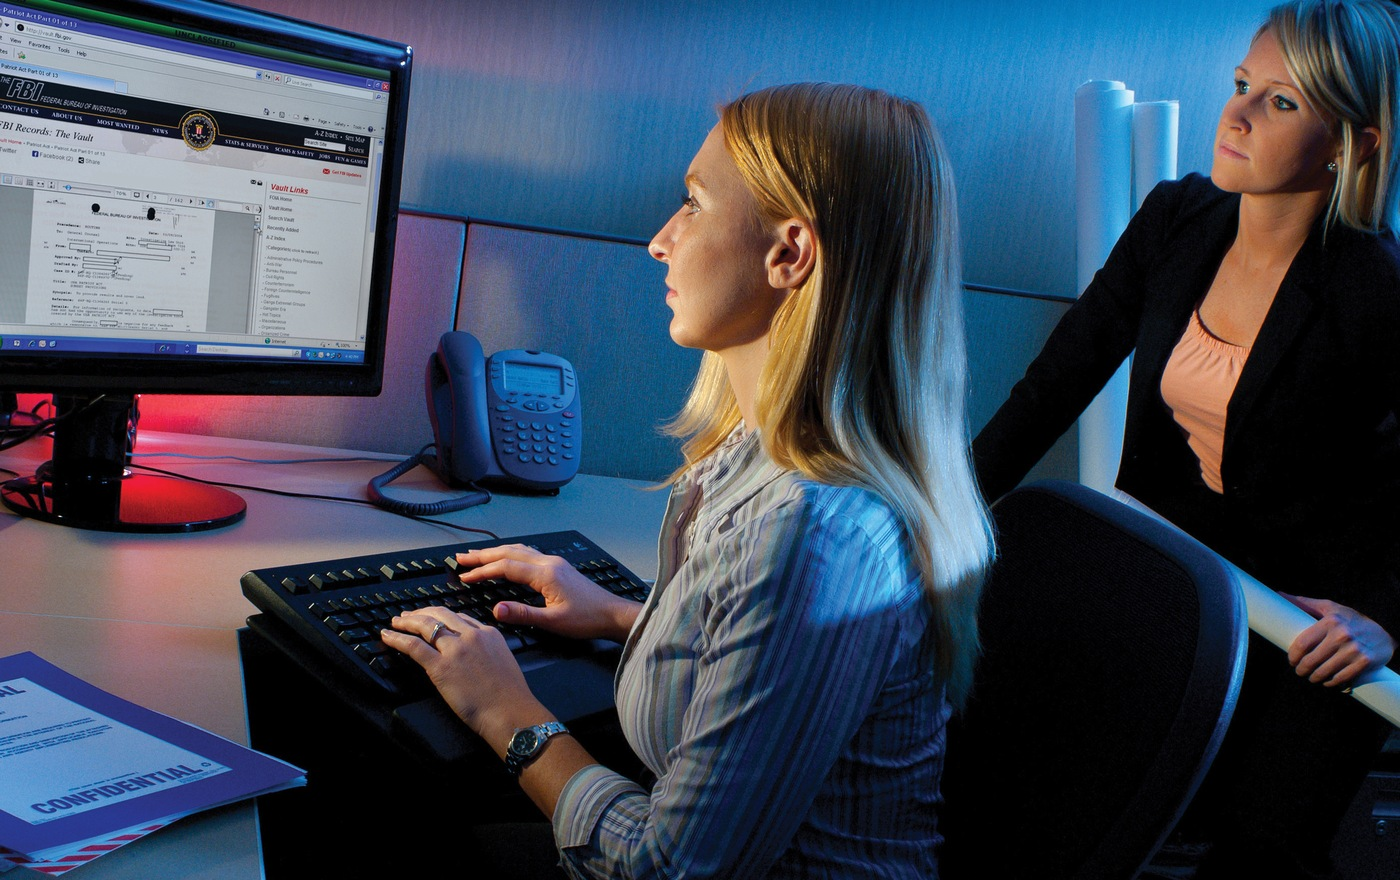 An FBI intelligence analyst works at a computer.